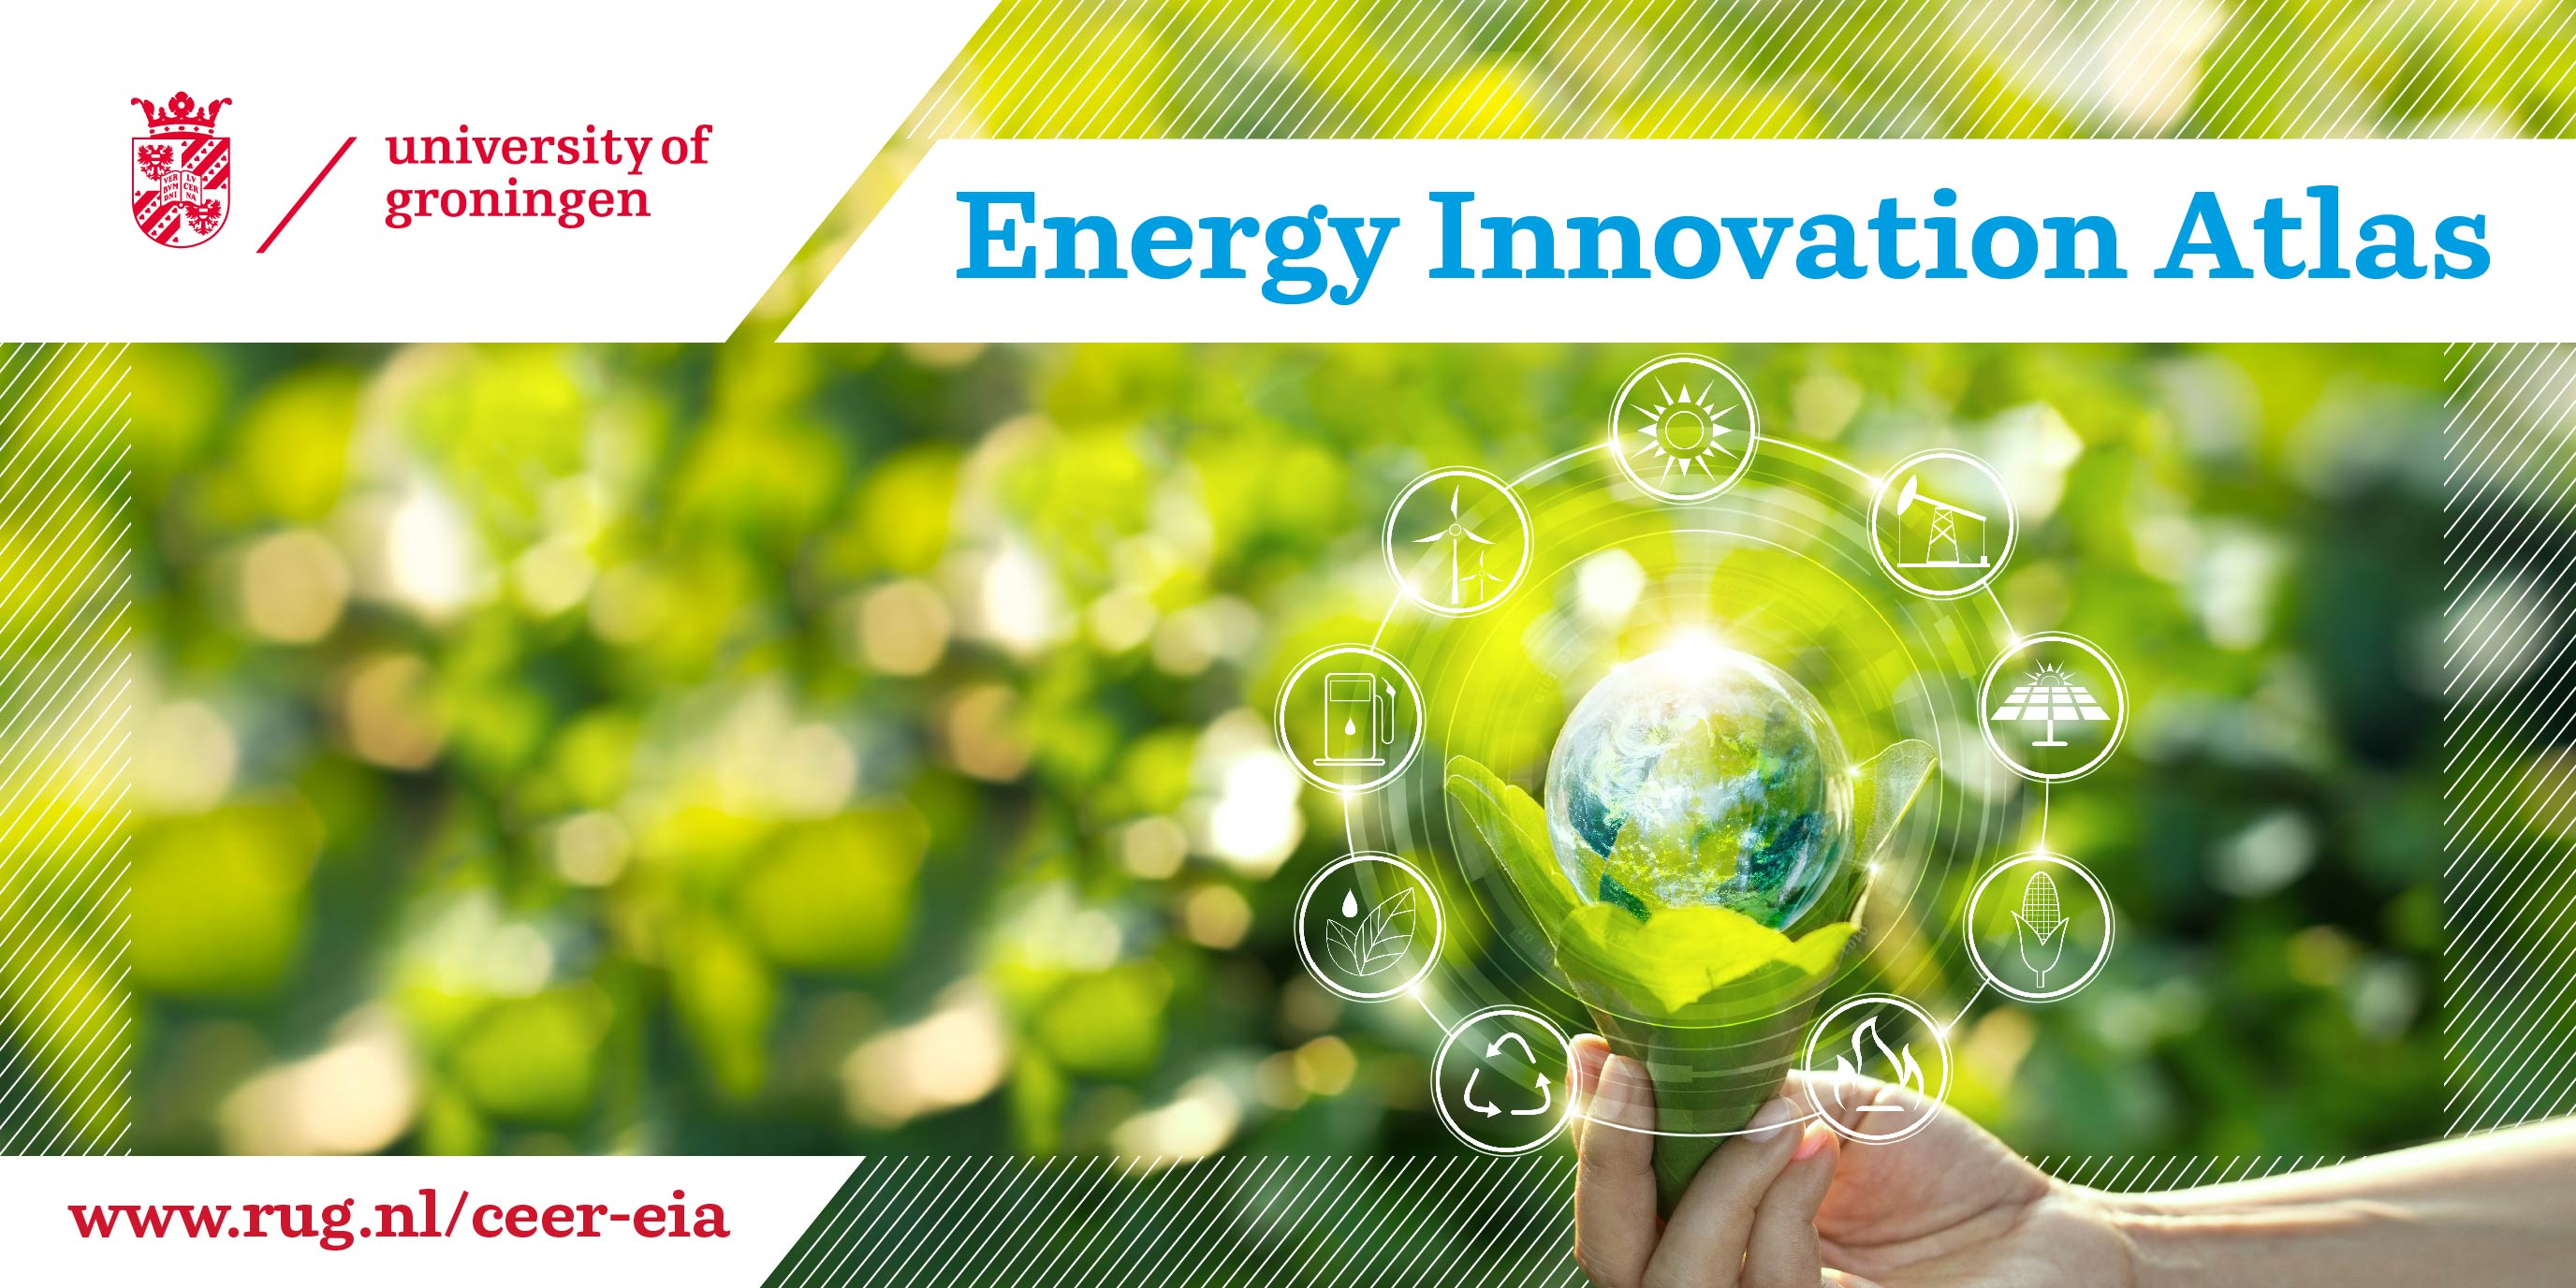 Check the Energy Innovations